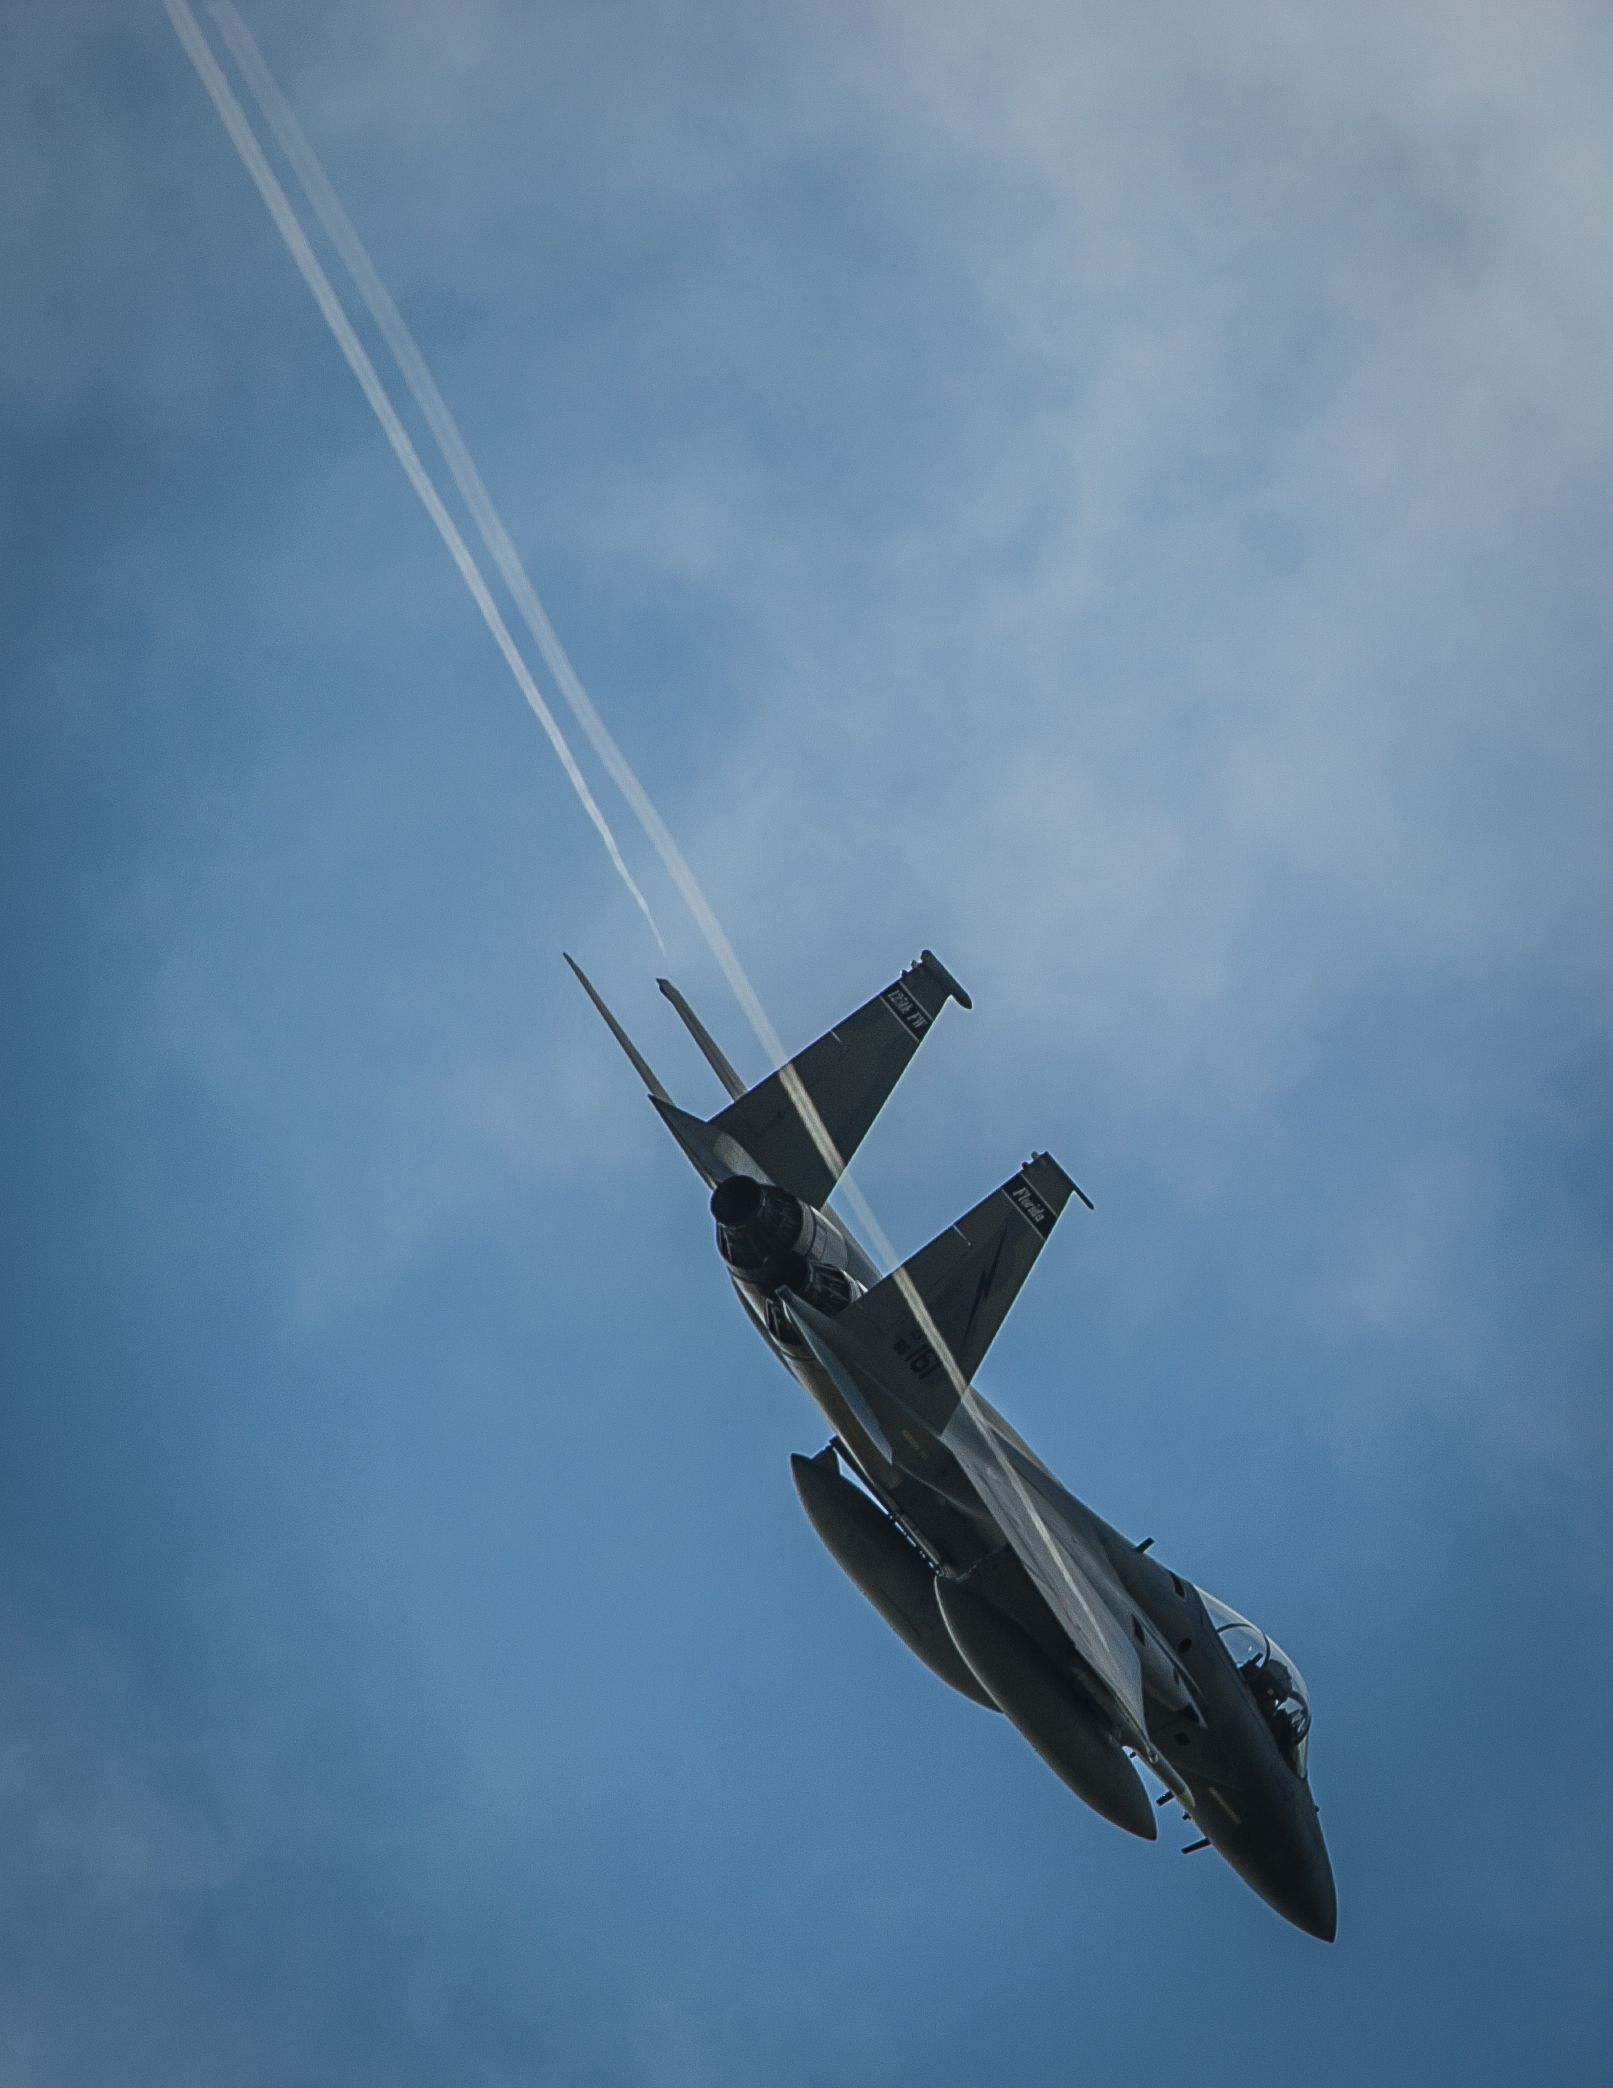 An f15c eagle peels off from the formation as it prepares